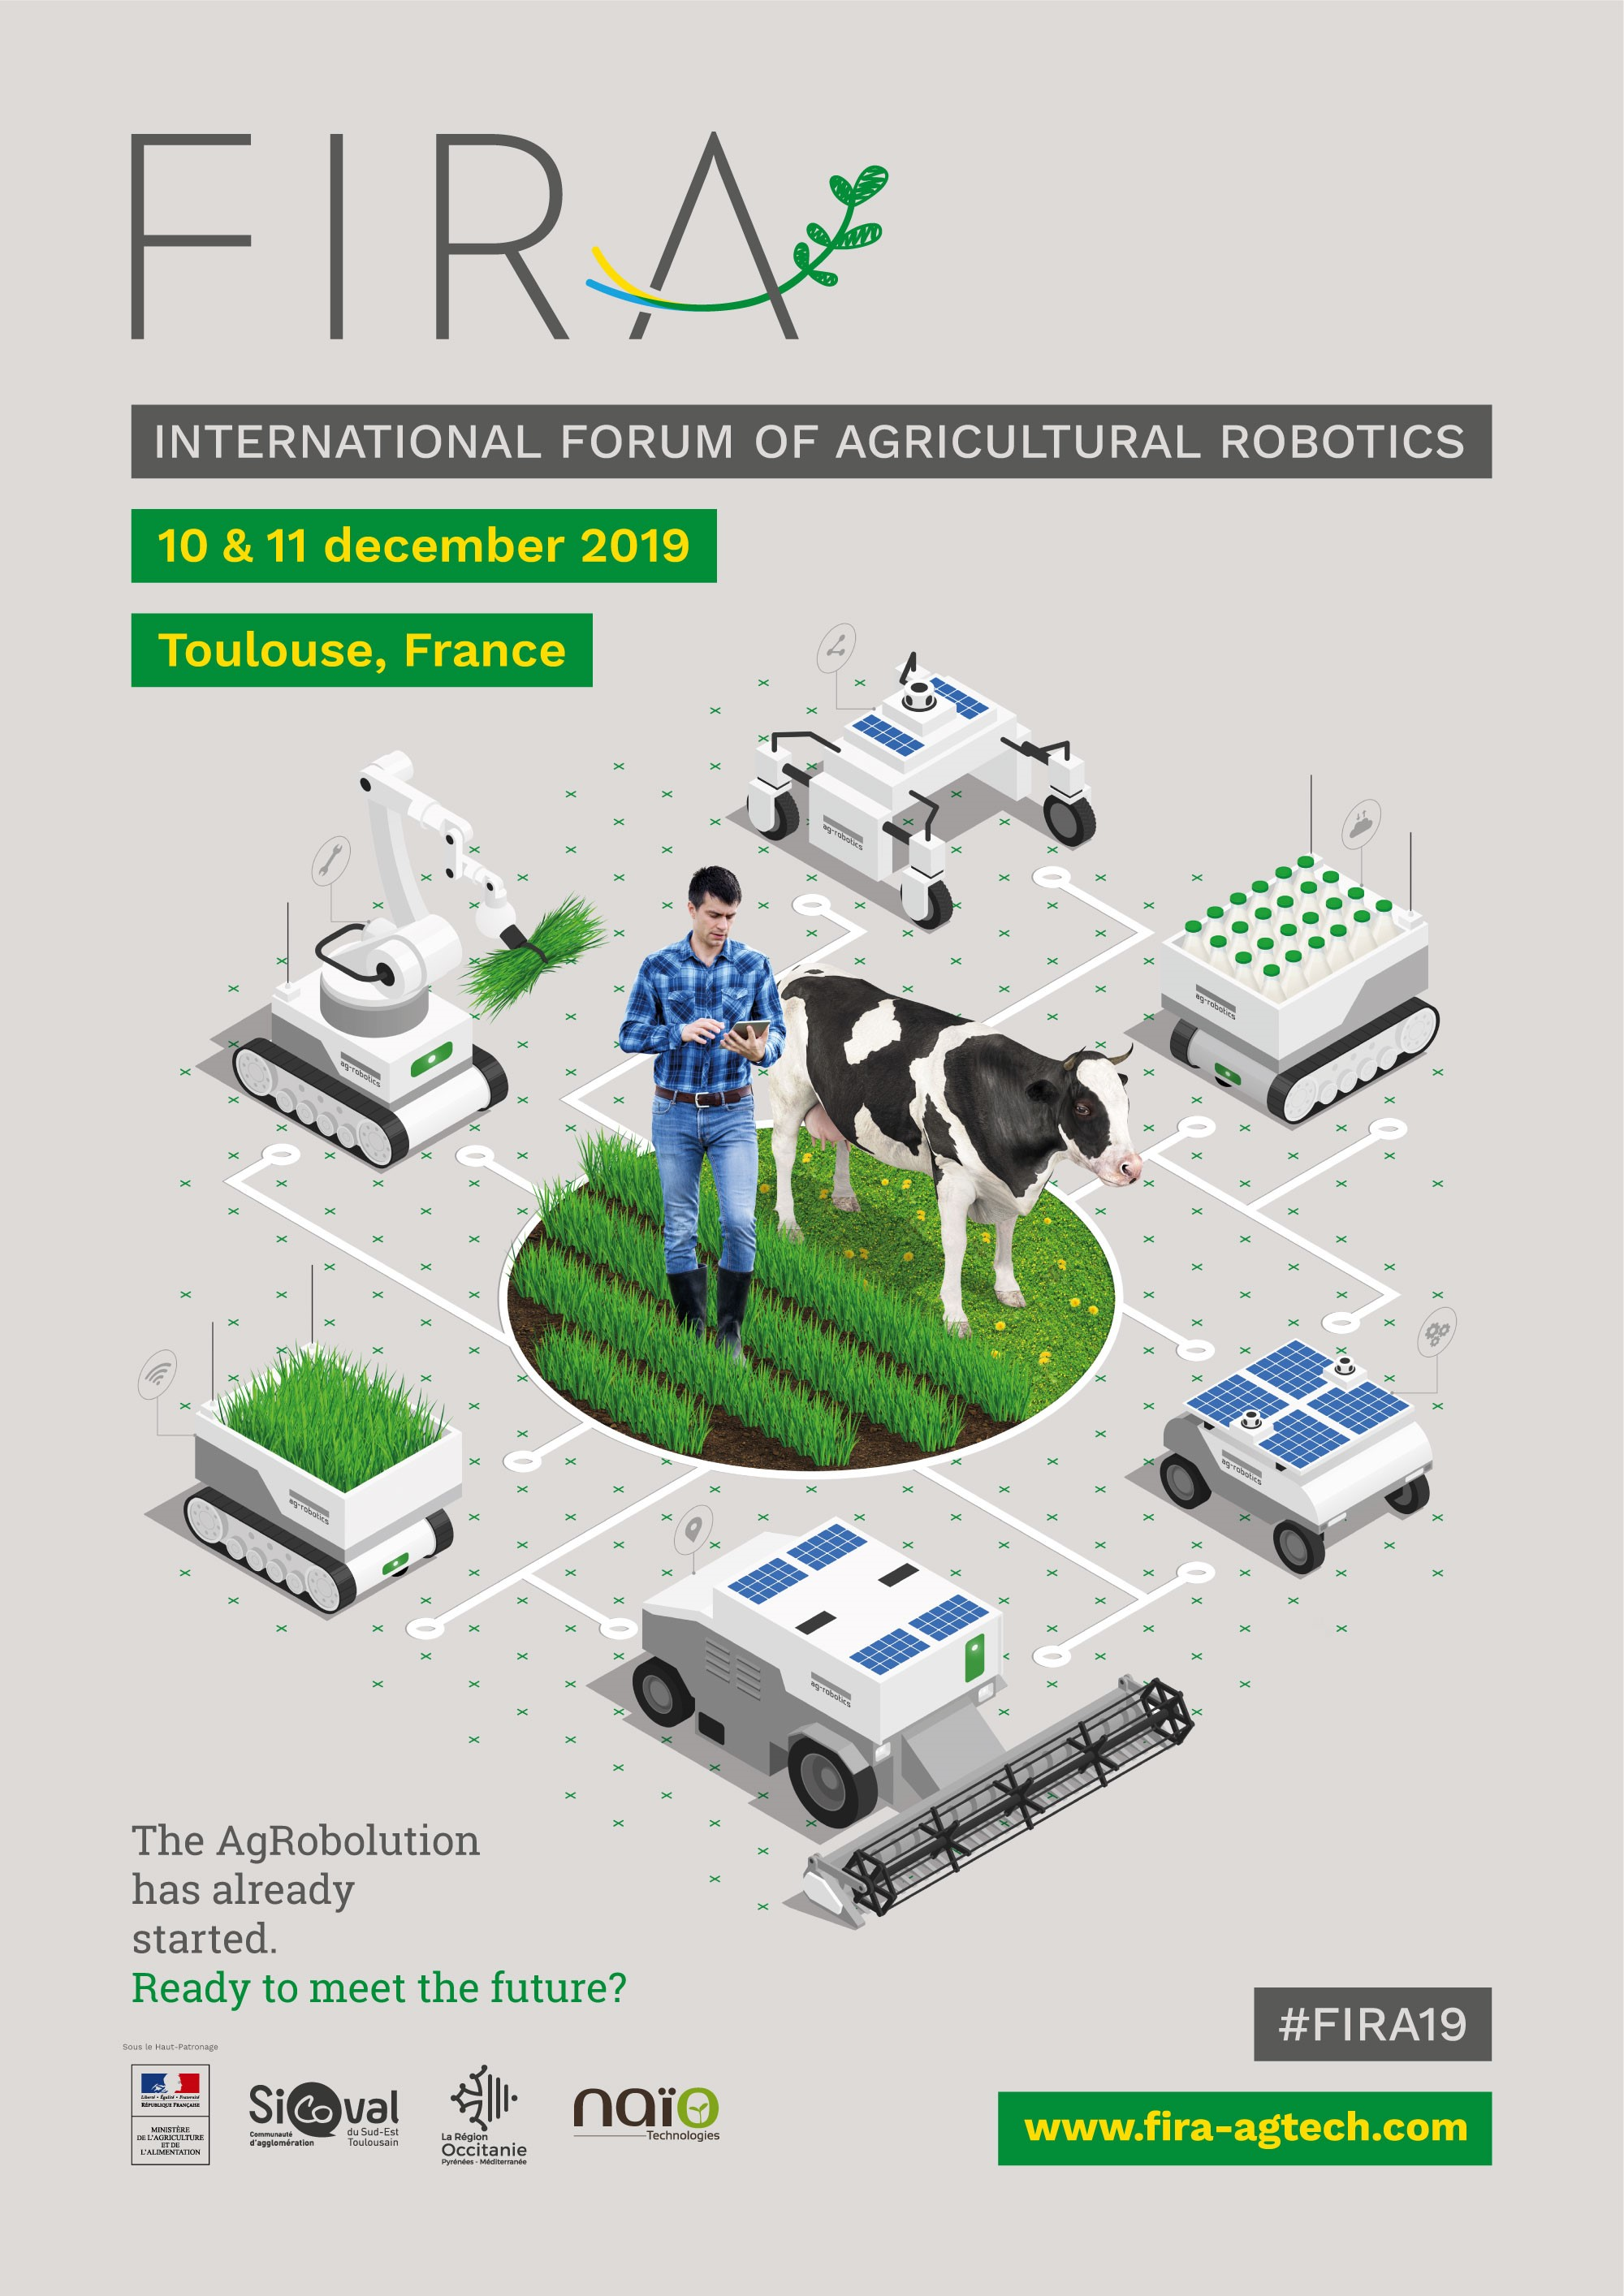 Invitation Til International Forum For Landbrugsrobotter Den 10.-11. December I Frankrig.